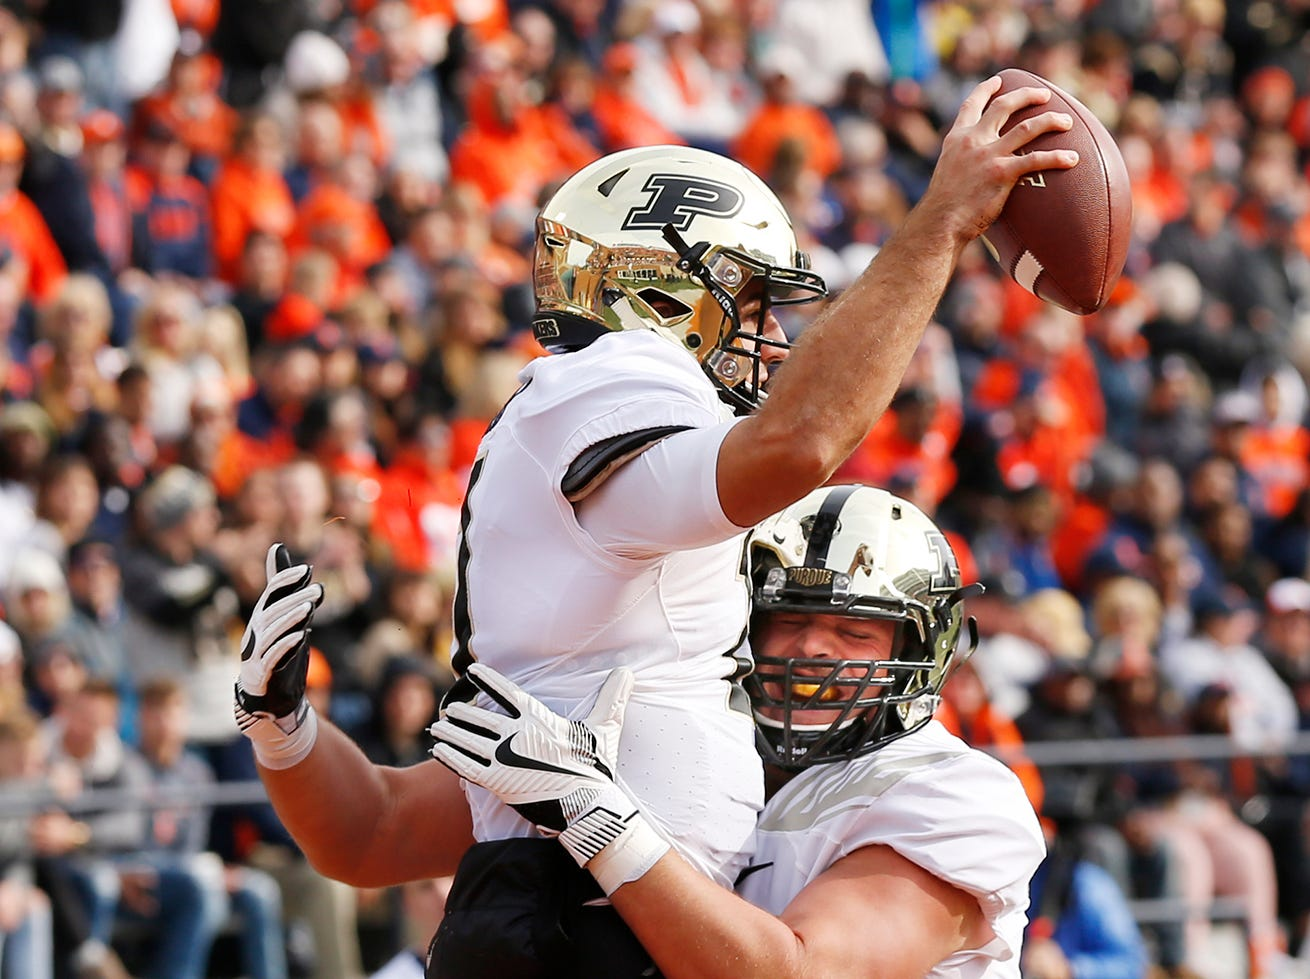 Matt McCann of Purdue lifts teammate David Blough into the air after Blough's touchdown reception at 4:06 in the first quarter against Illinois Saturday, October 13, 2018, in Champaign, Illinois. Purdue pounded Illinois 46-7.